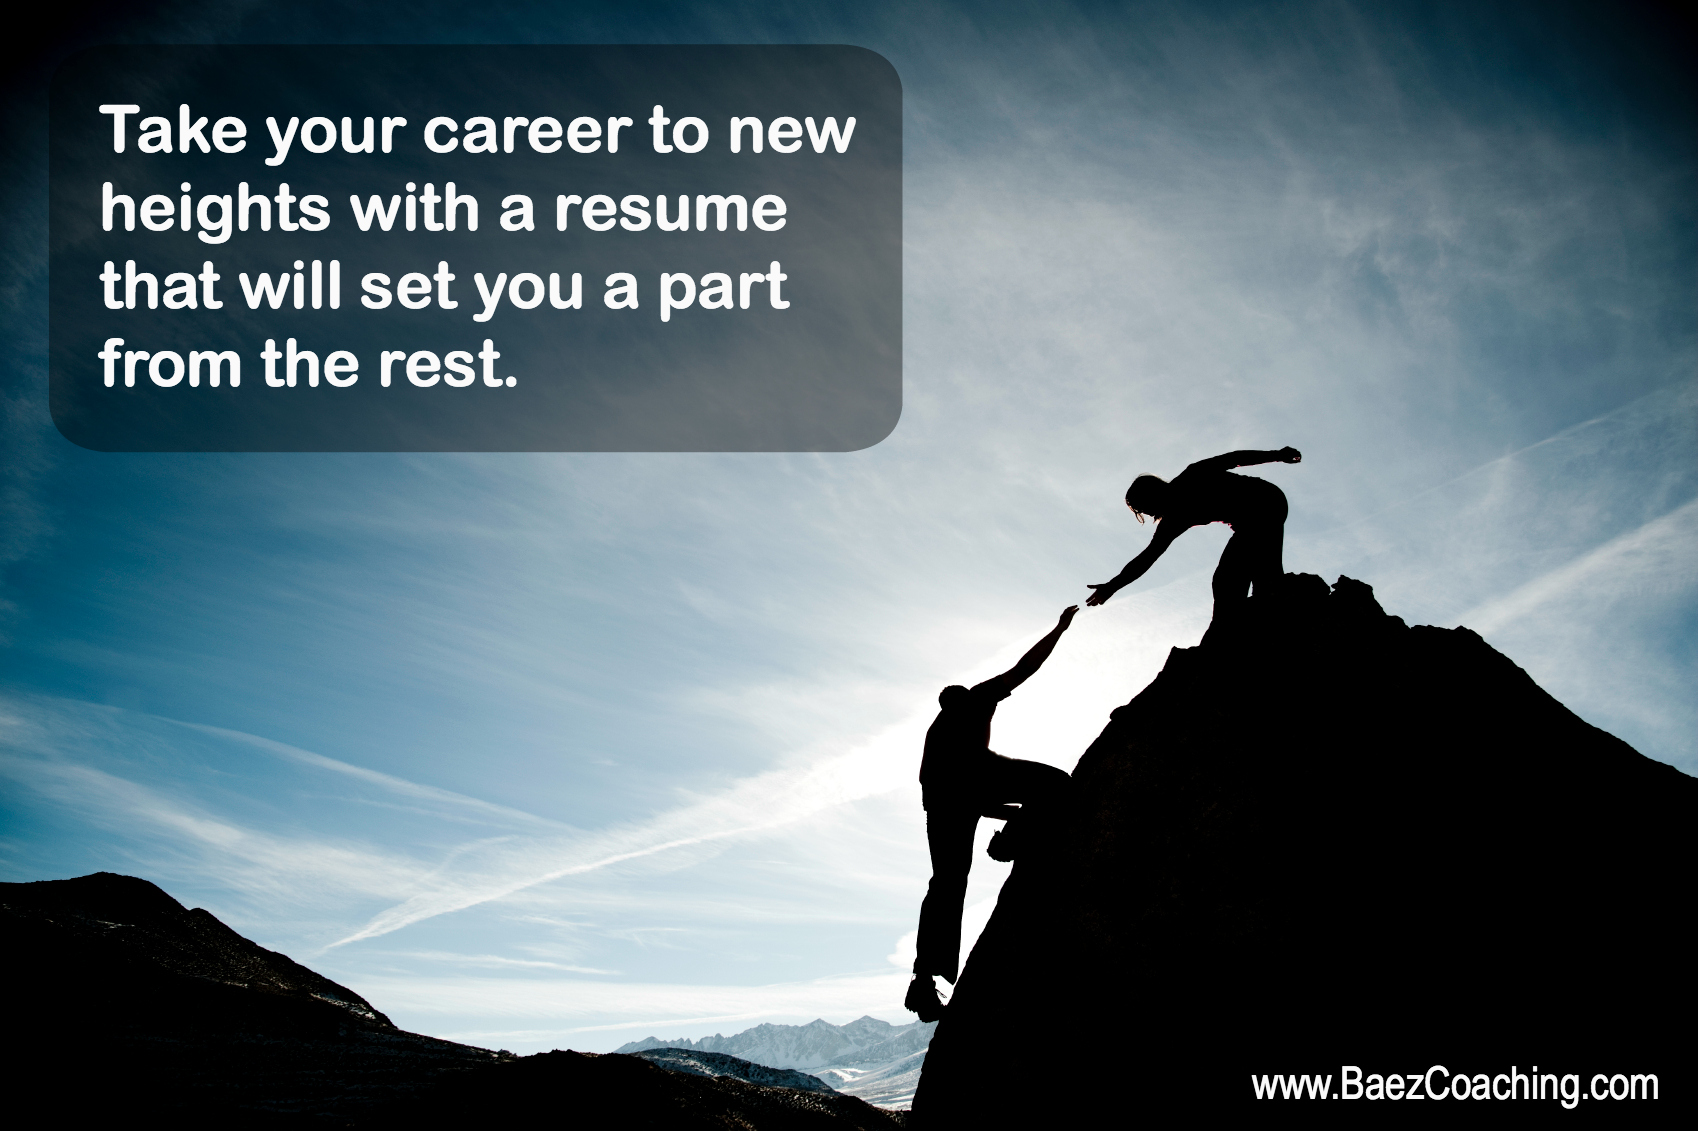 baez coaching and consulting offers customized resume and cover letter coaching and updating to showcase the key highlights of your career goals and